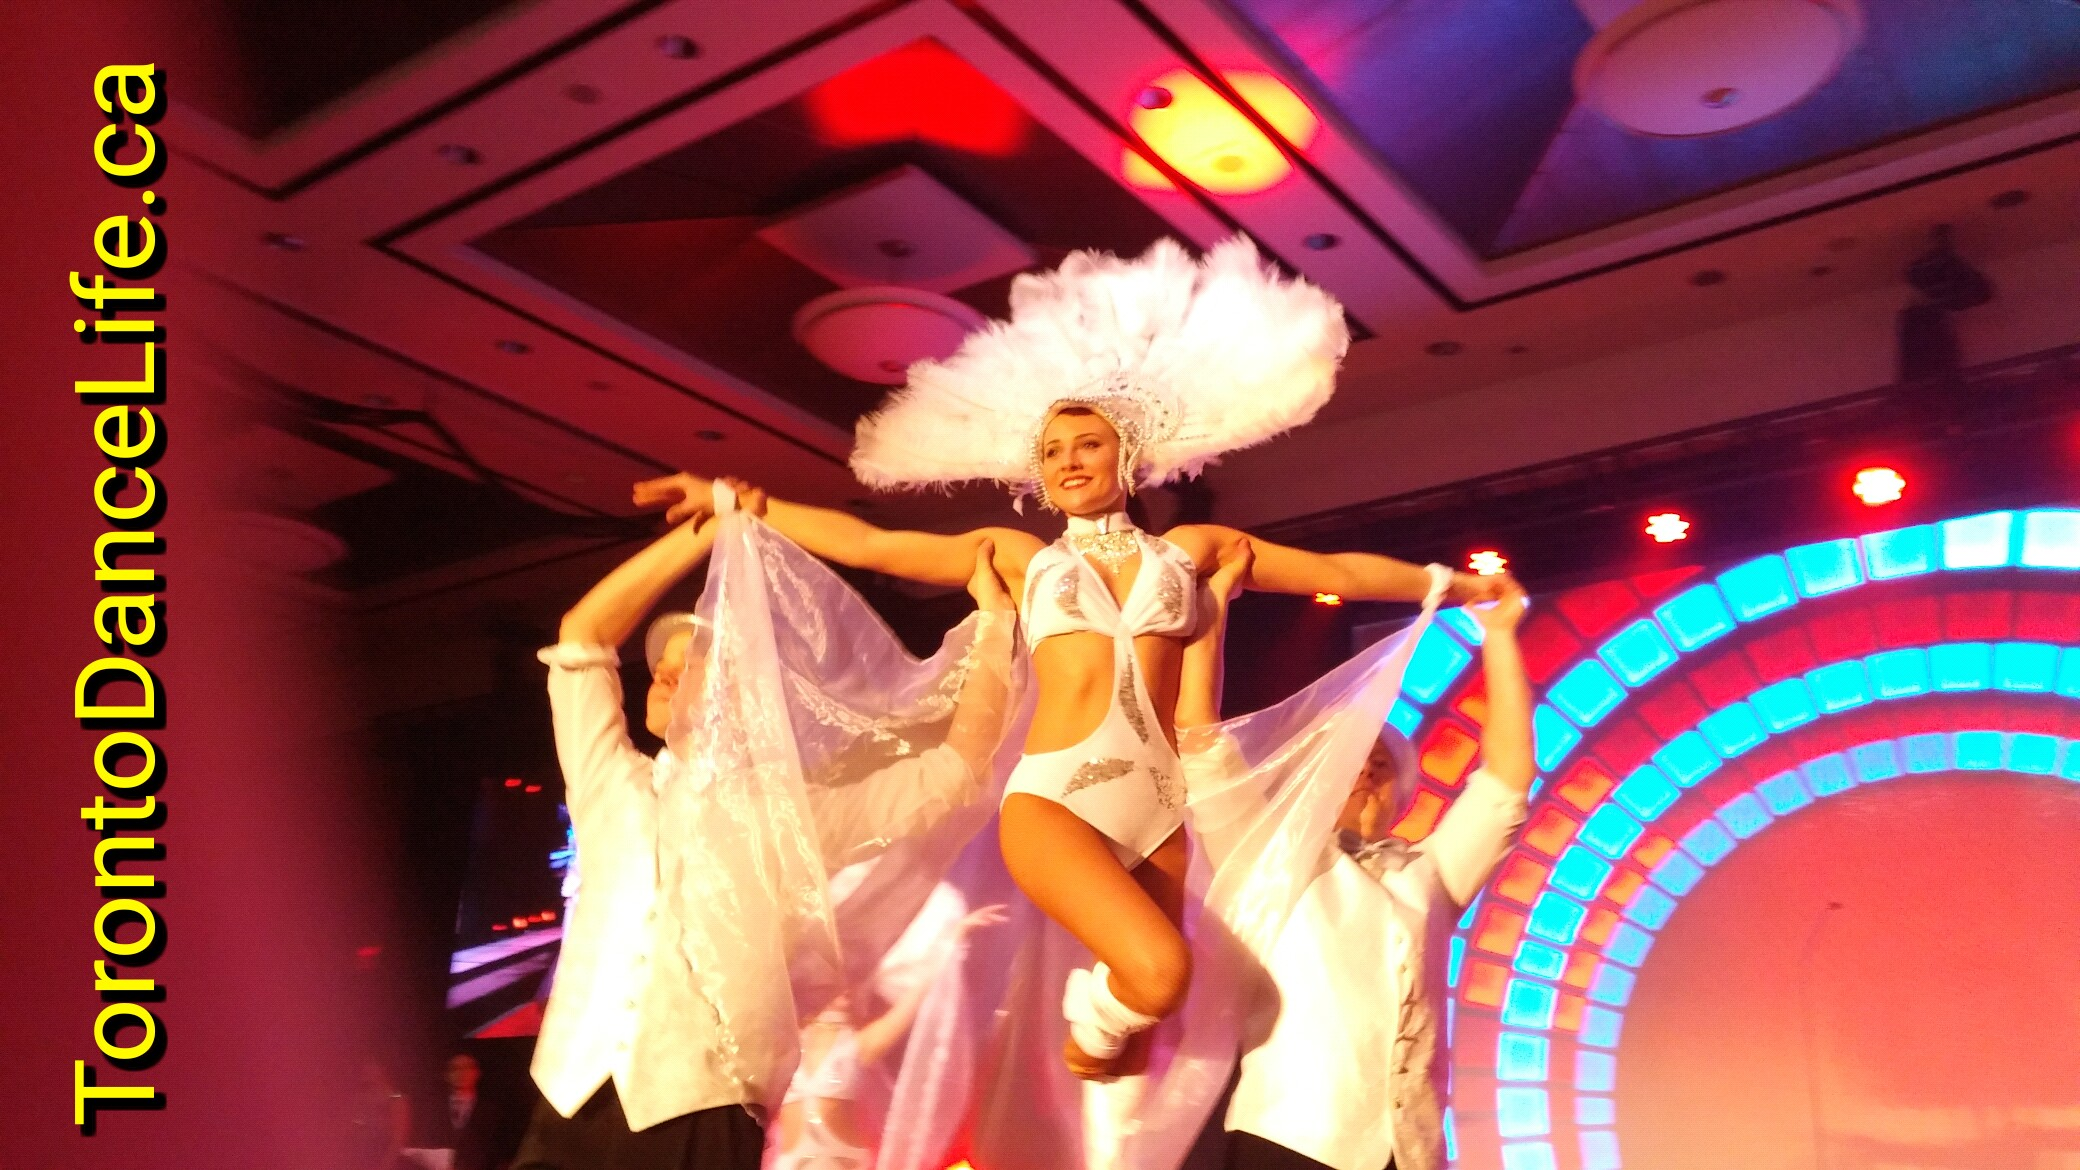 Las Vegas Entertainment Show Toronto